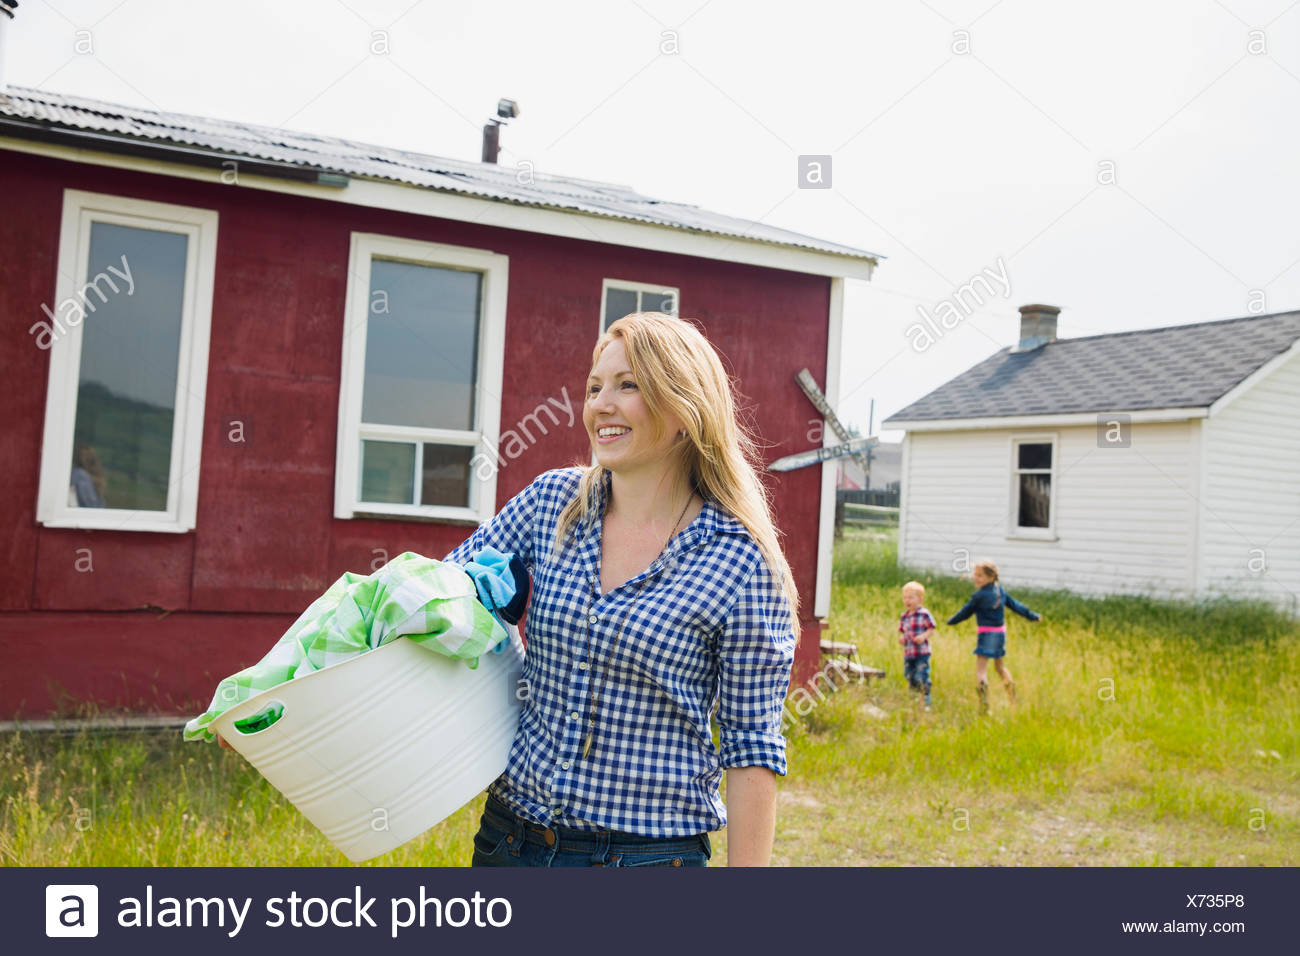 Smiling woman carrying blanchisserie extérieur chambre Photo Stock